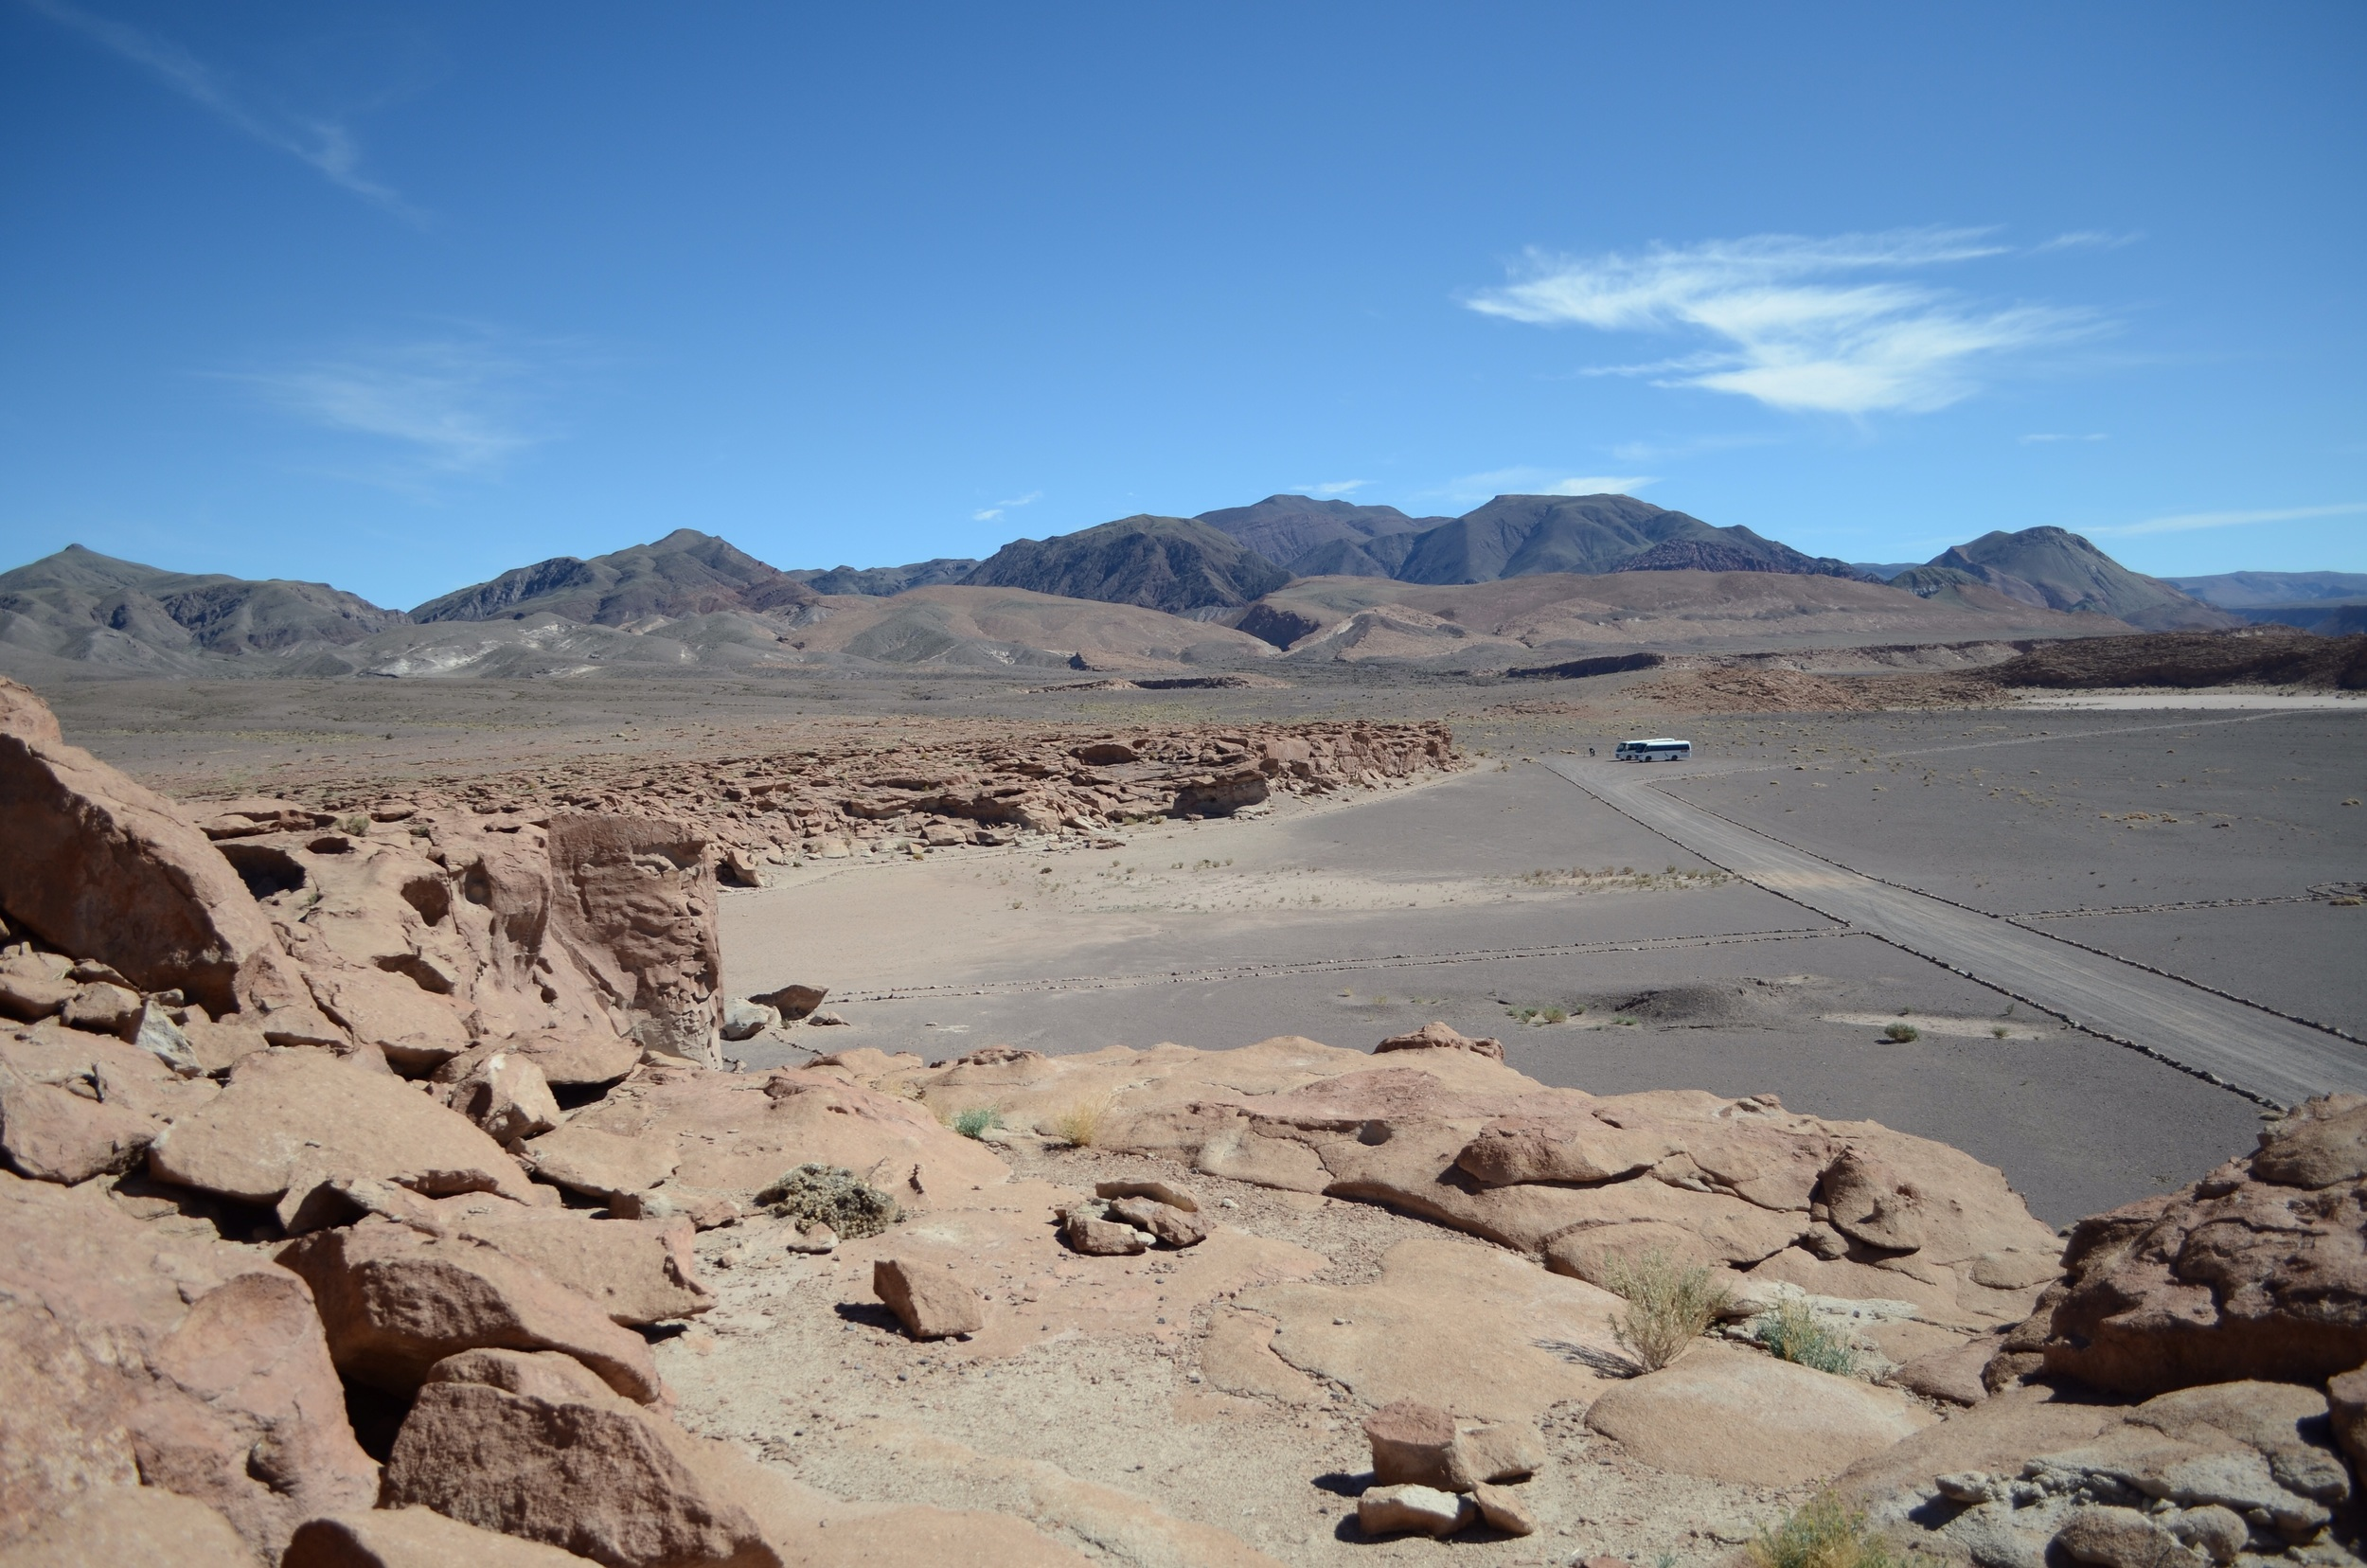 Site of the petroglyphs, with our group busses in the background // 16 april 2015